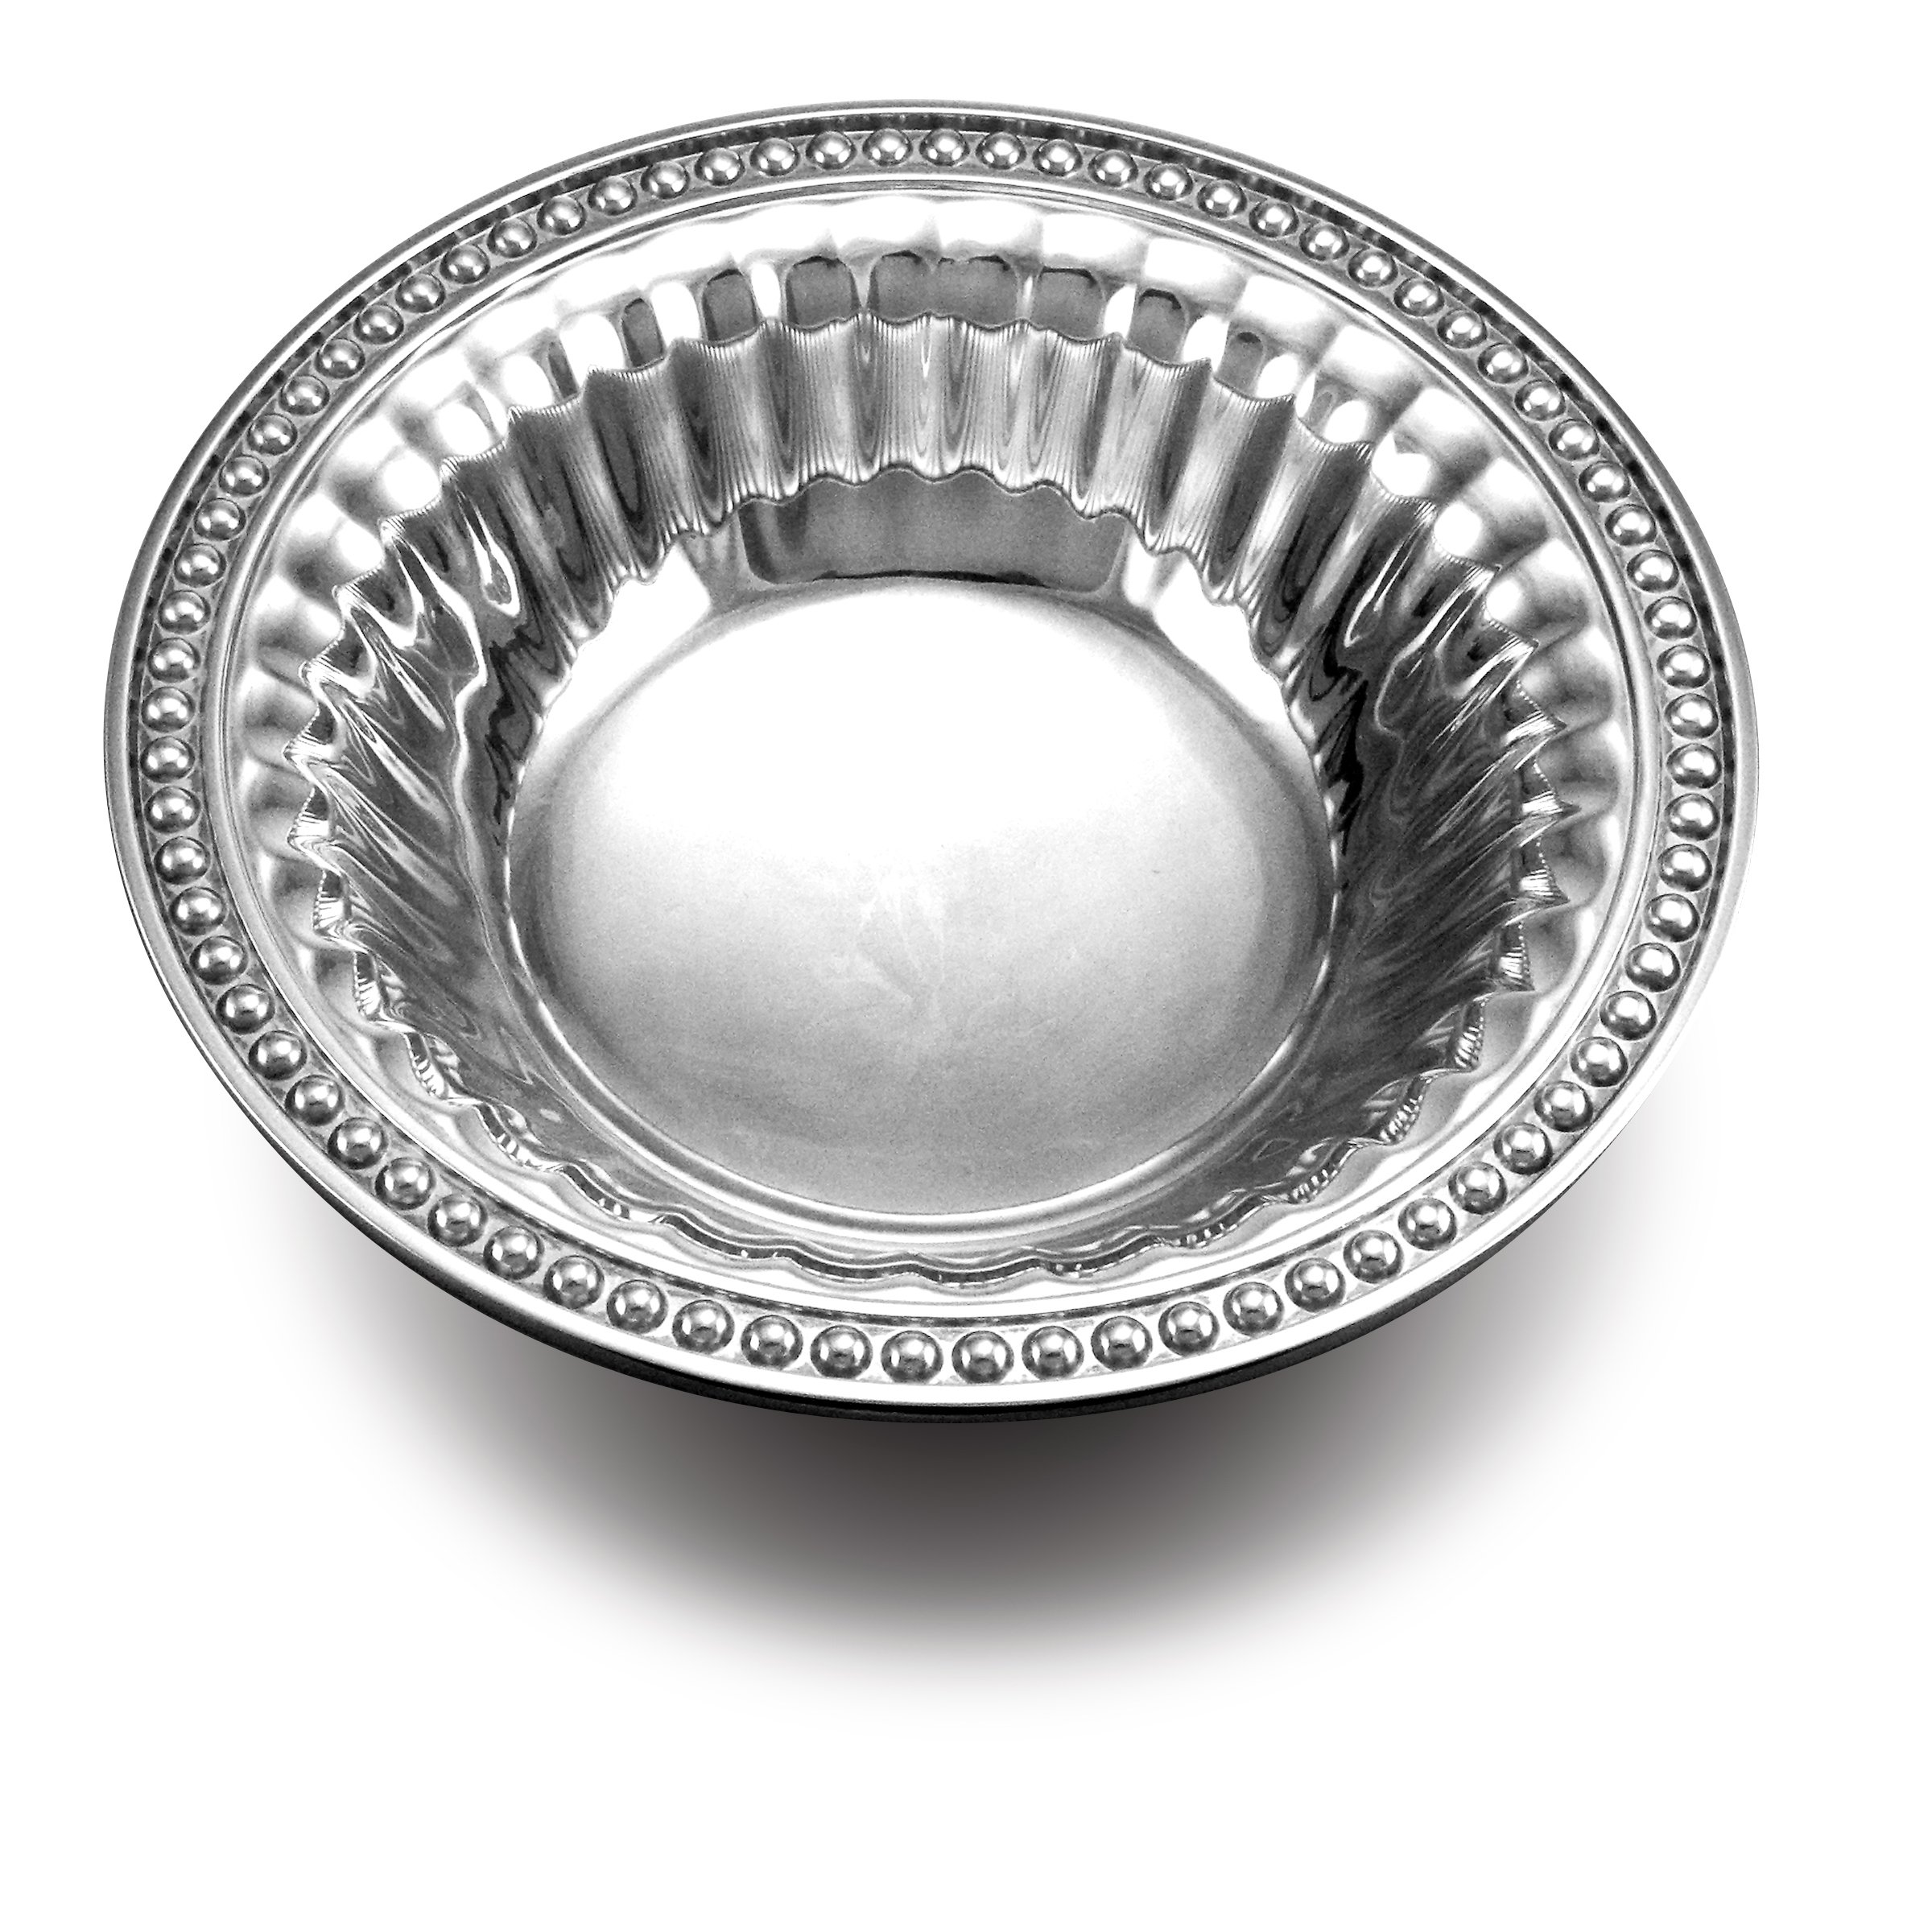 Wilton Armetale Flutes and Pearls Round Snack Bowl, 8-Inch